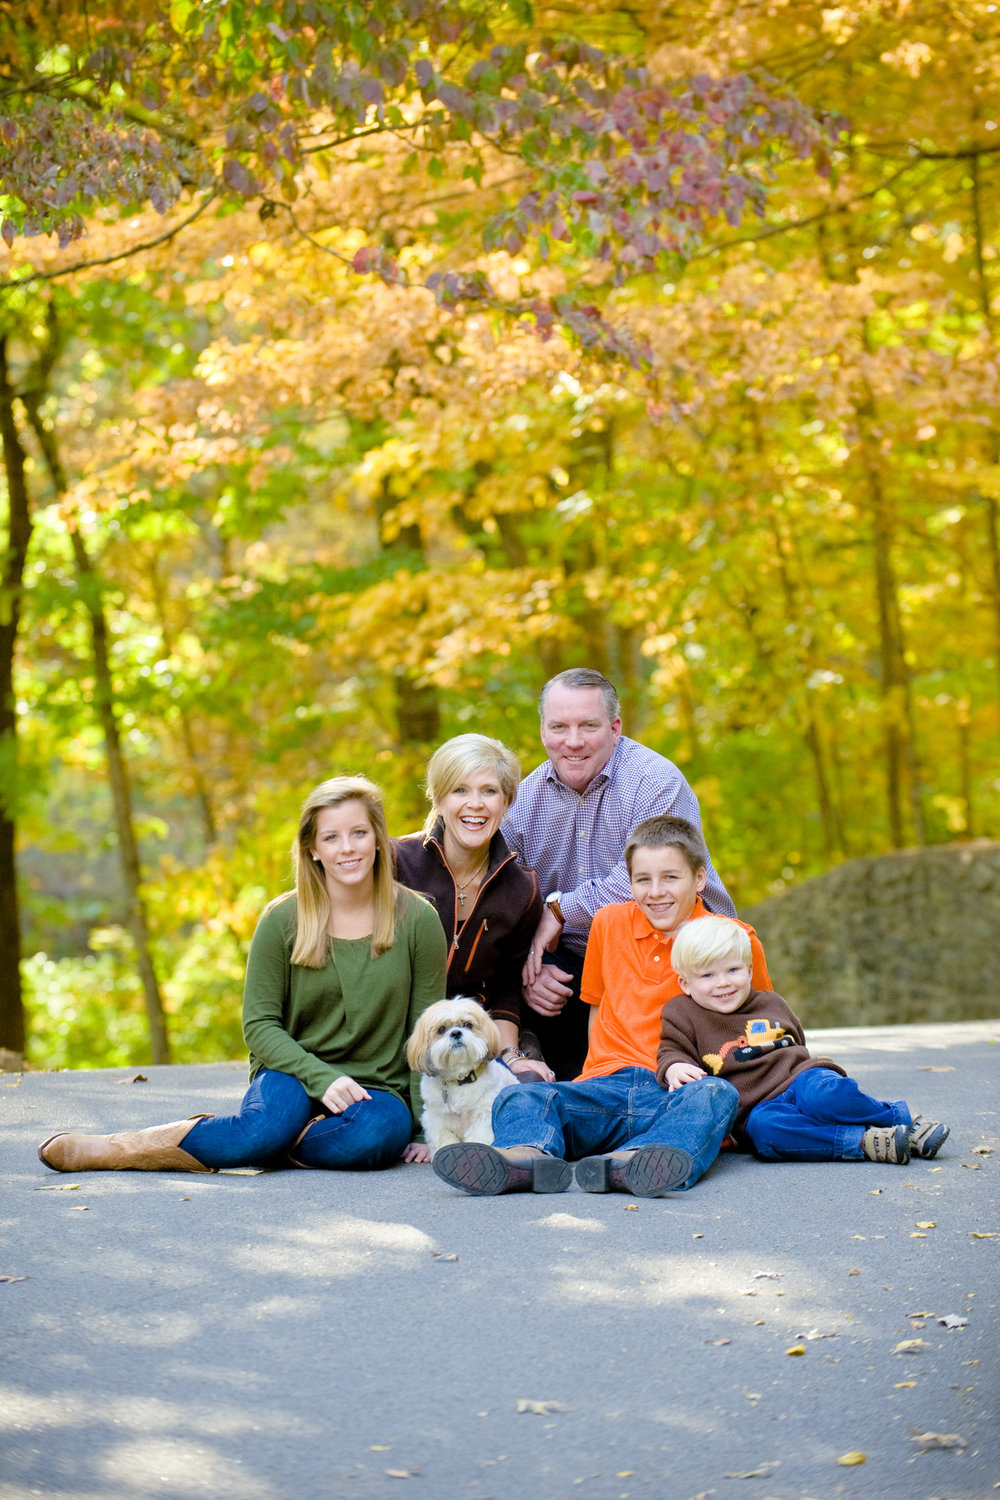 Family Photographer Nashville Tennessee The Velvet Trunk-0002.jpg